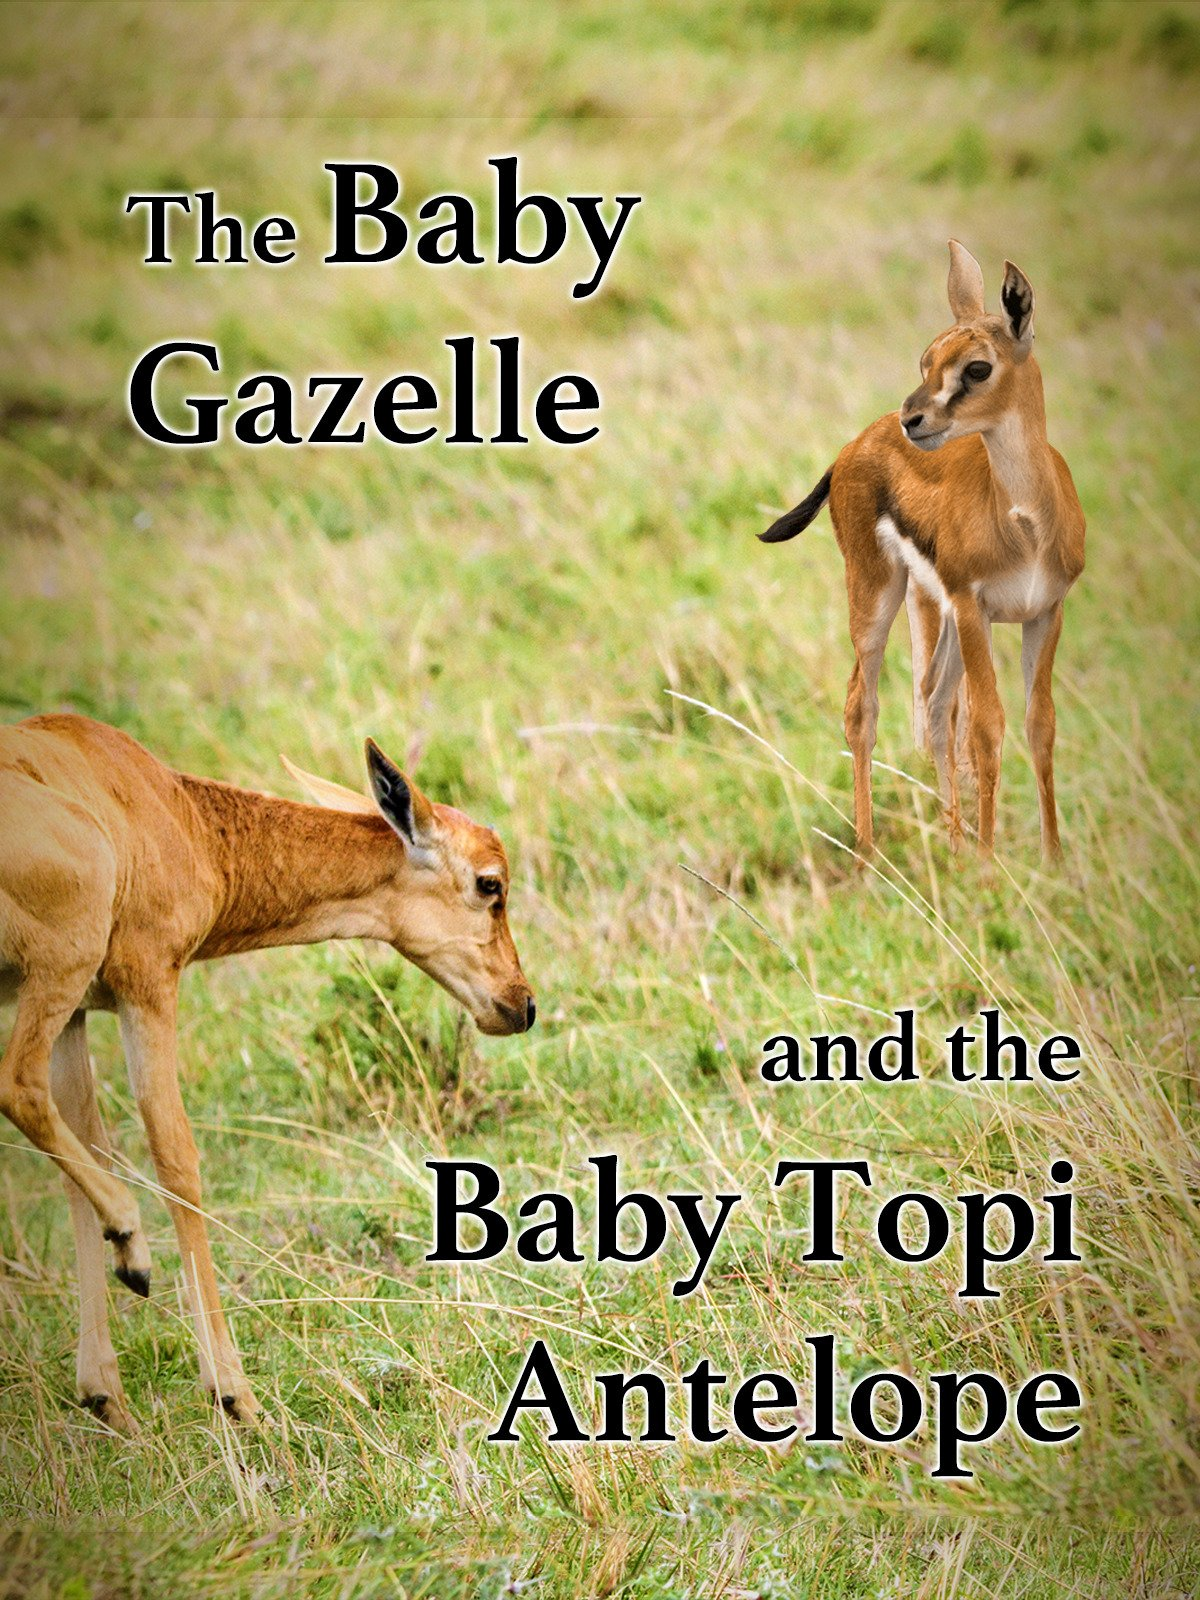 The Baby Gazelle & The Baby Topi Antelope